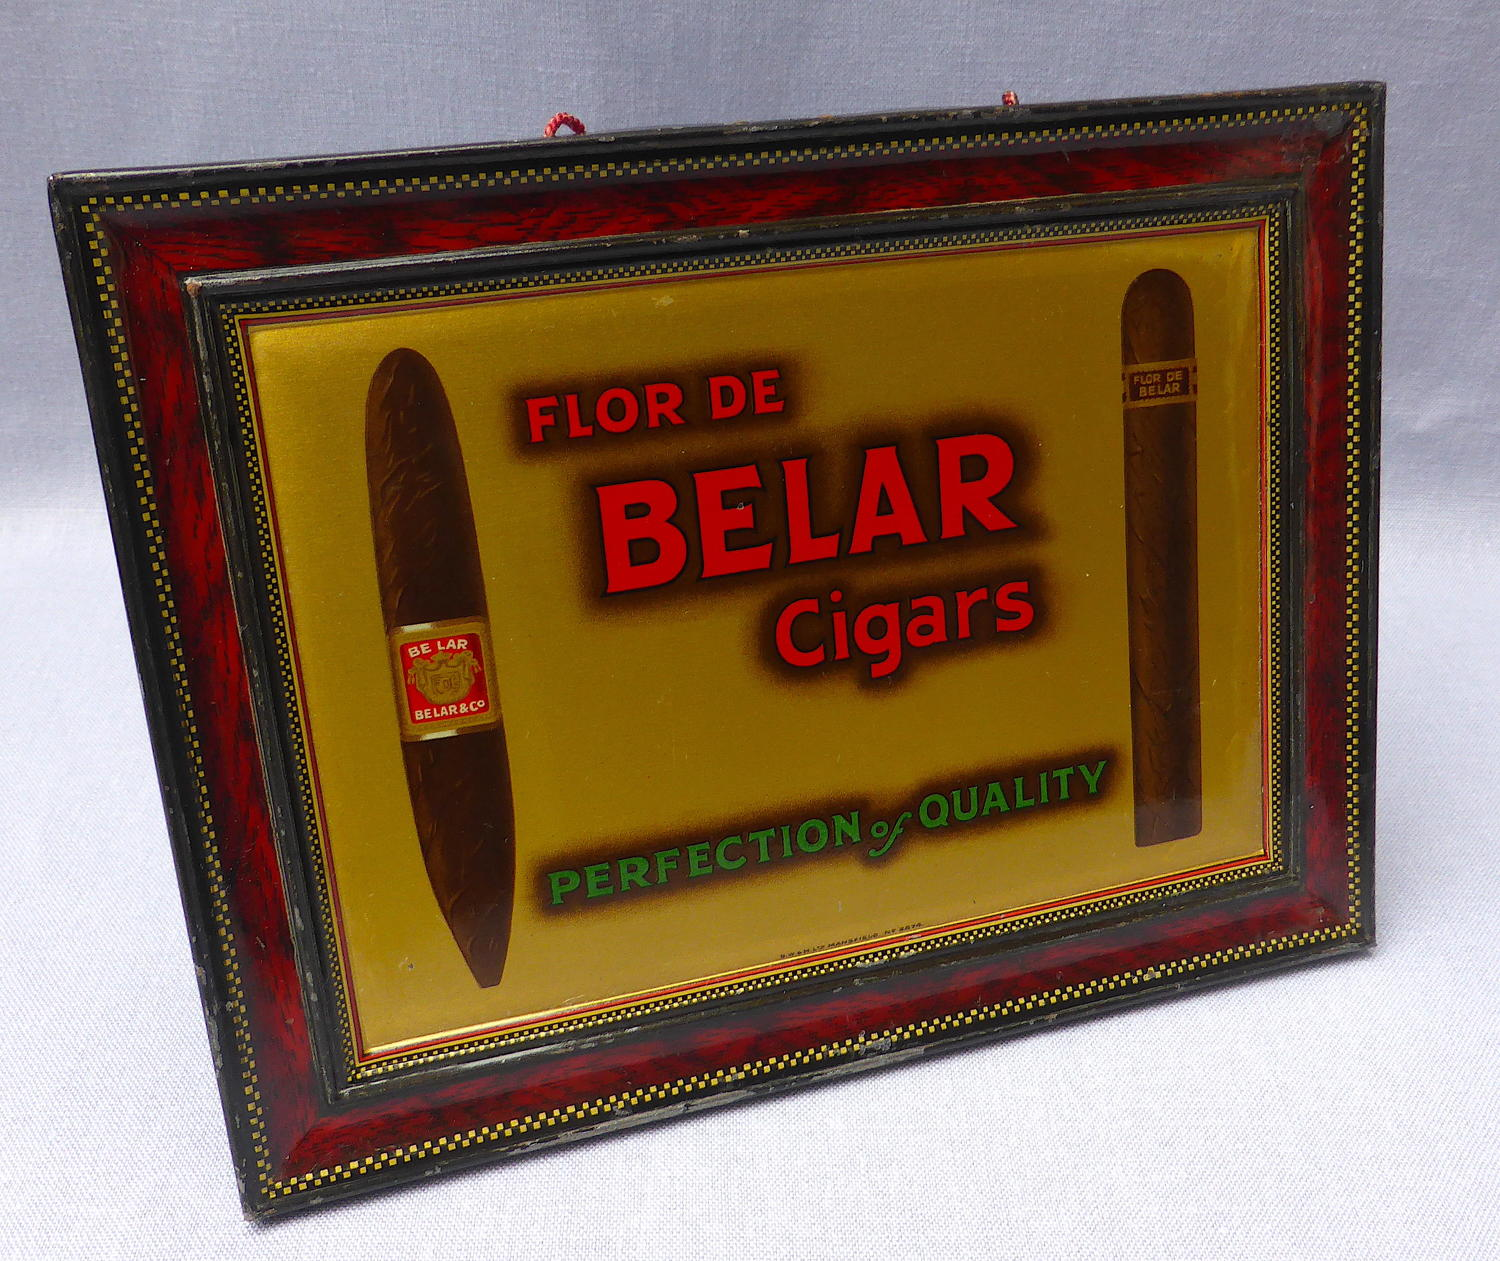 Flor de Belar Cigars Tin Shop Advertising Sign